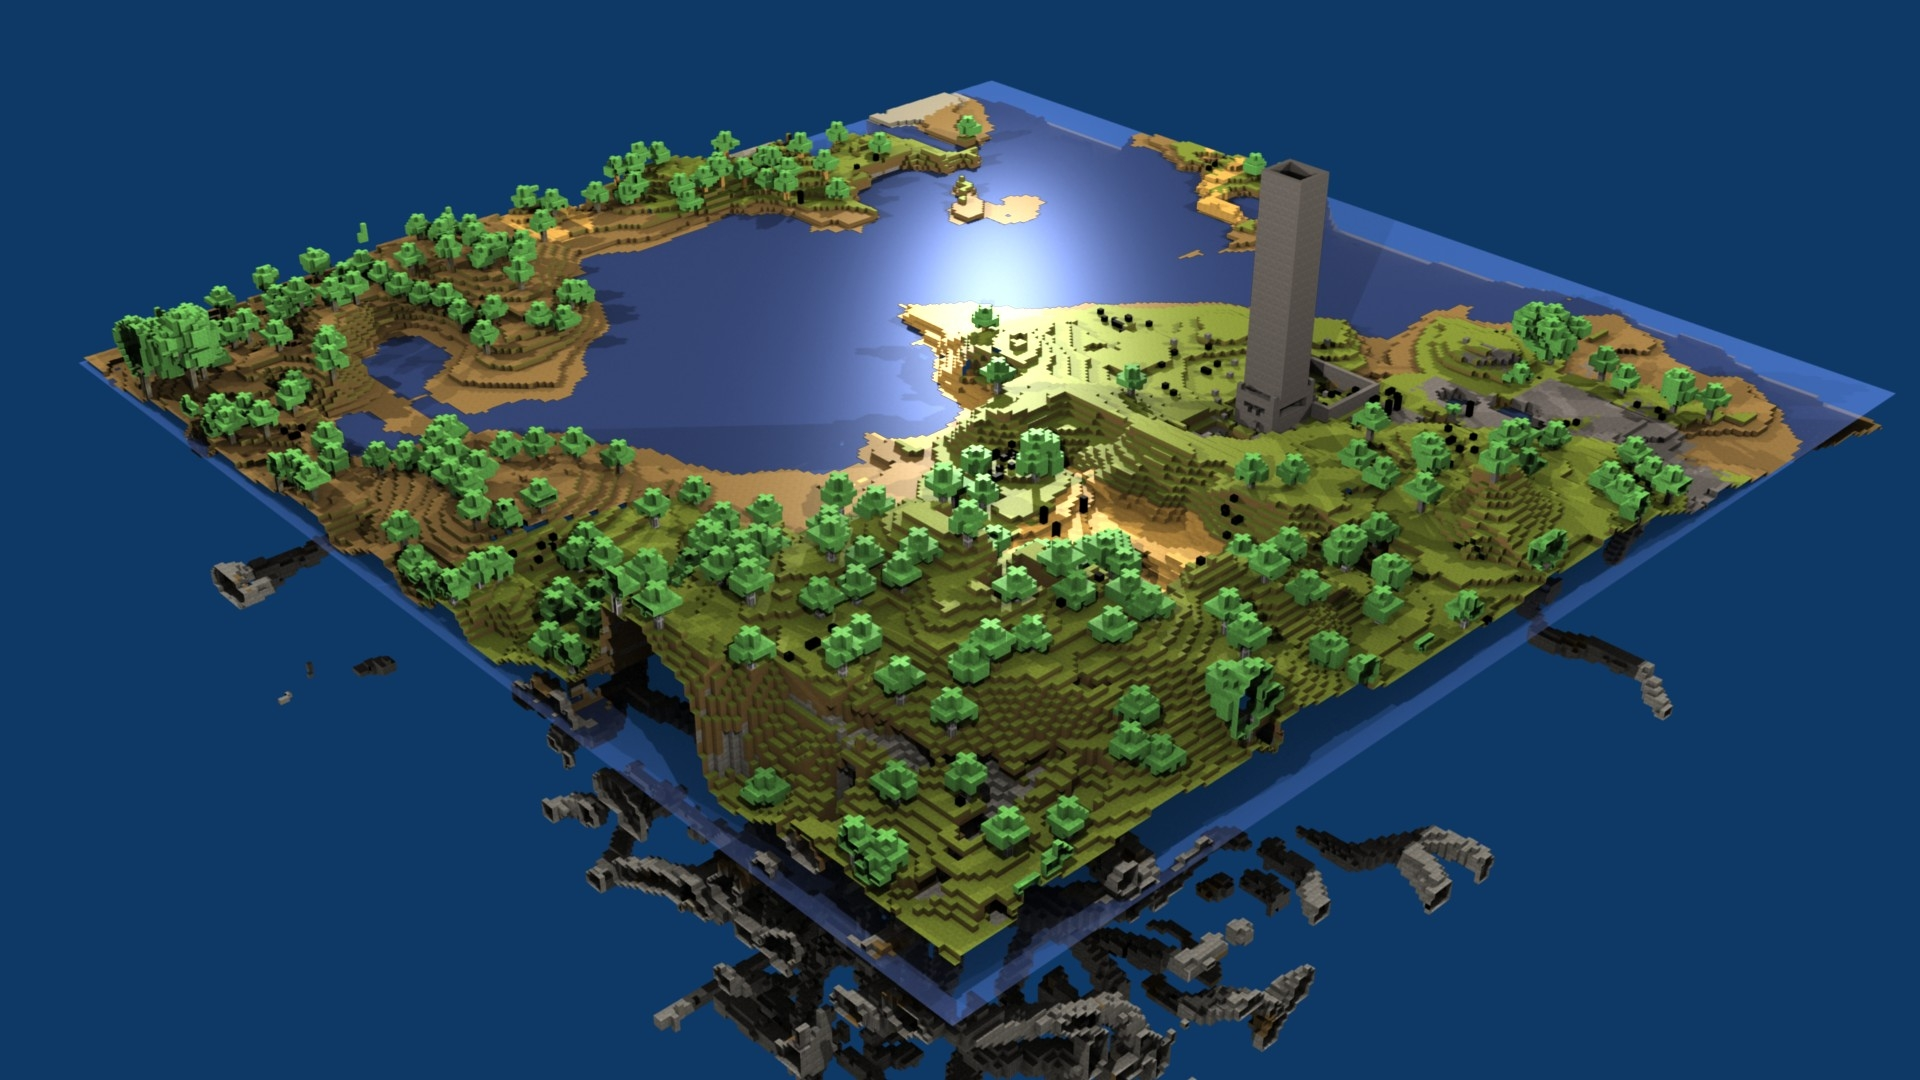 Minecraft world map hd wallpaper hd latest wallpapers minecraft world map hd wallpaper gumiabroncs Image collections